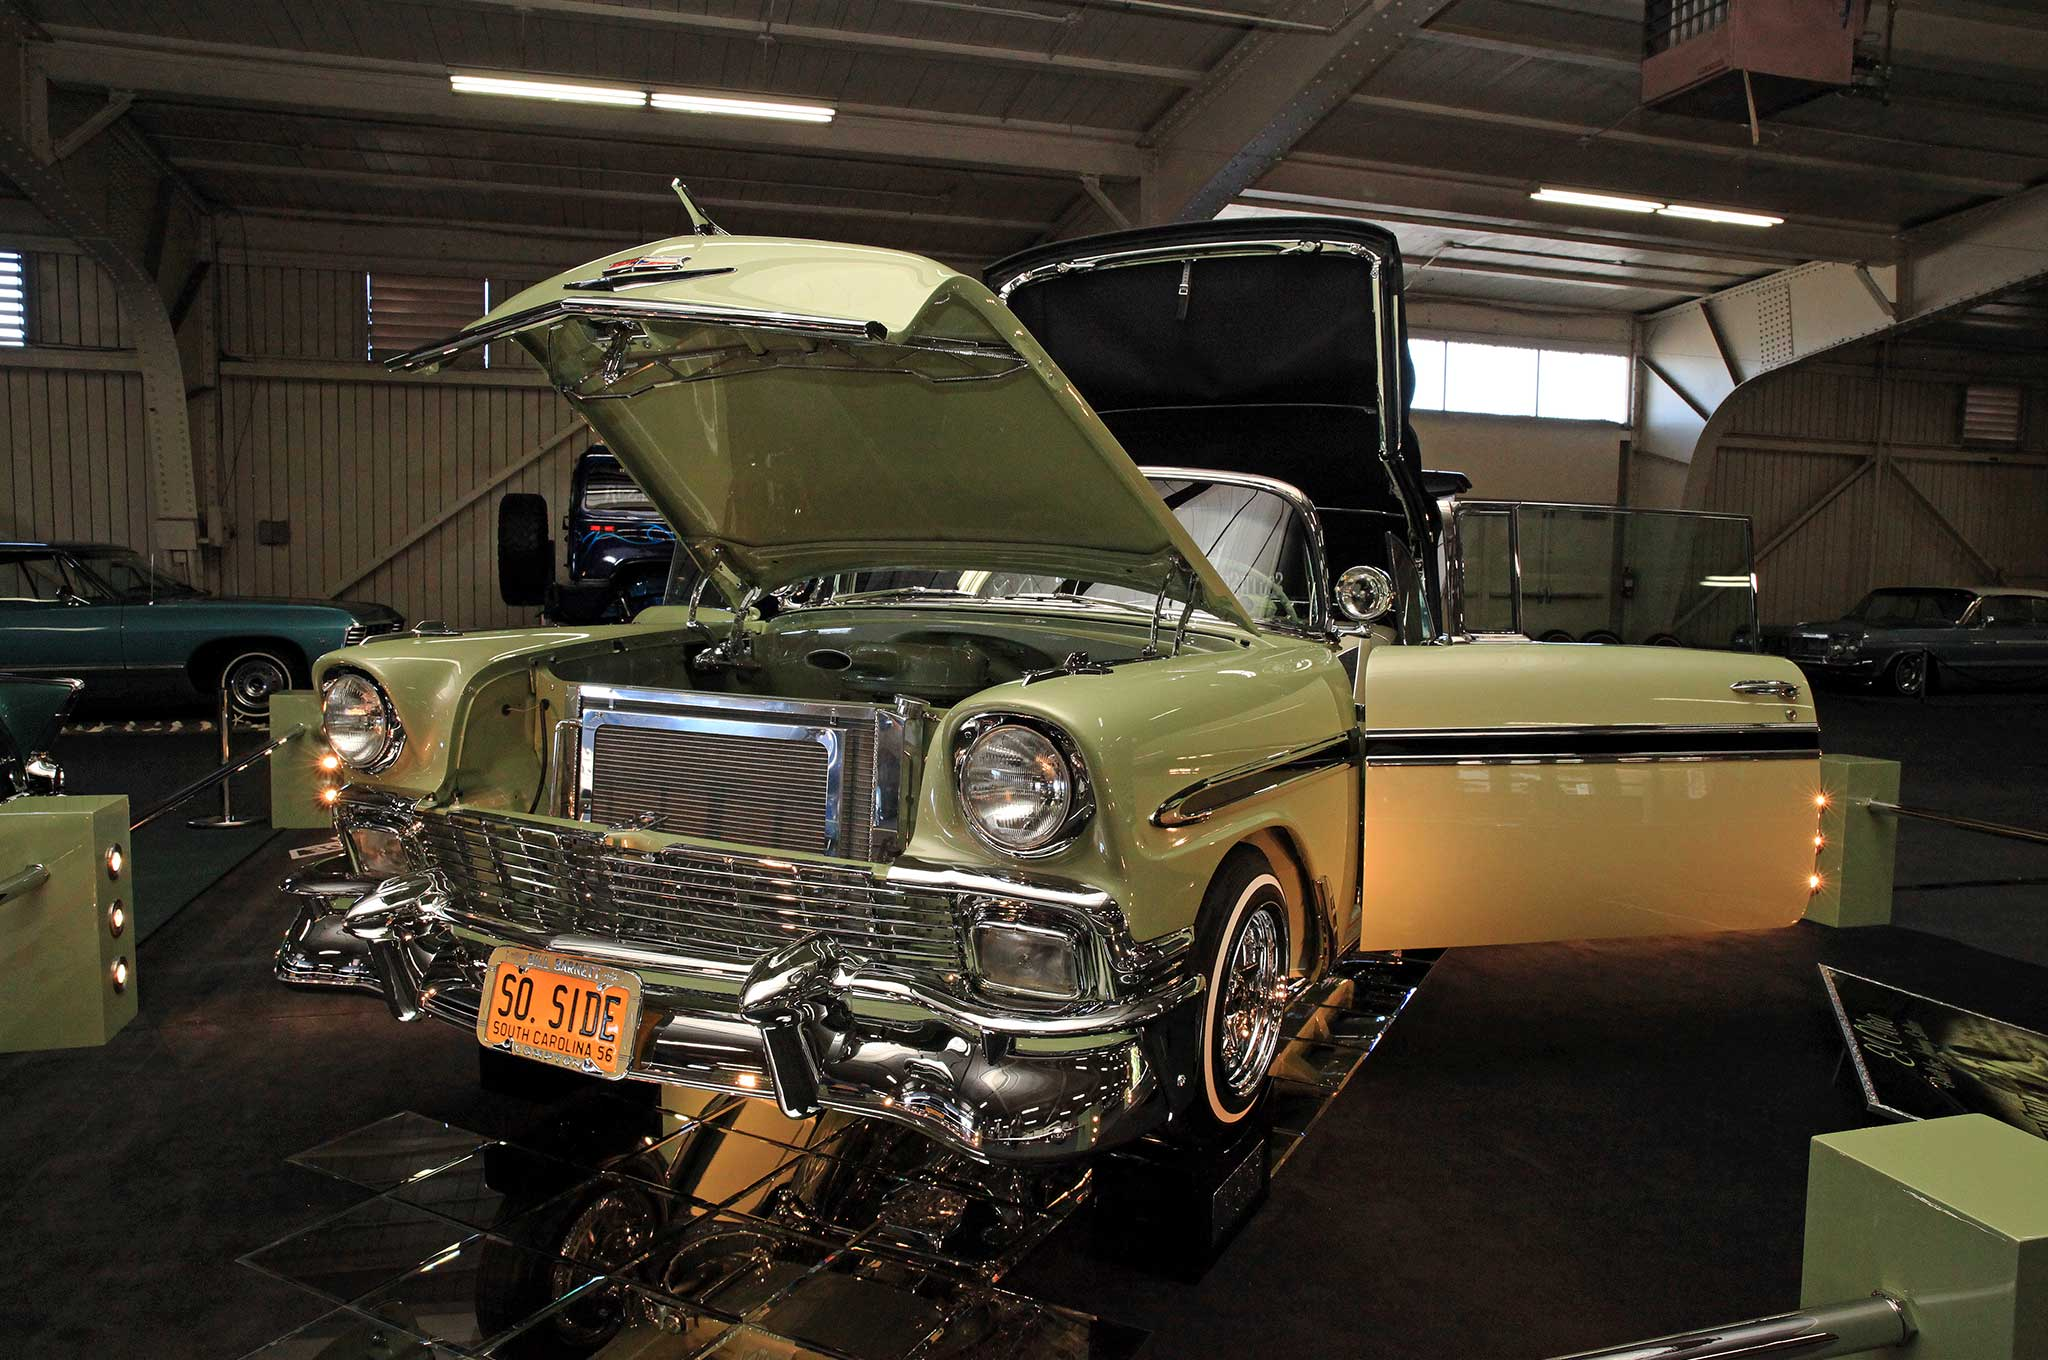 Rear Web likewise Chevy Ls Free Shipping Tremec Speed Wpdb Ps Ac Fuel Injected together with Bet B Beleraiii Black moreover  furthermore Front Web. on 56 chevy bel air build